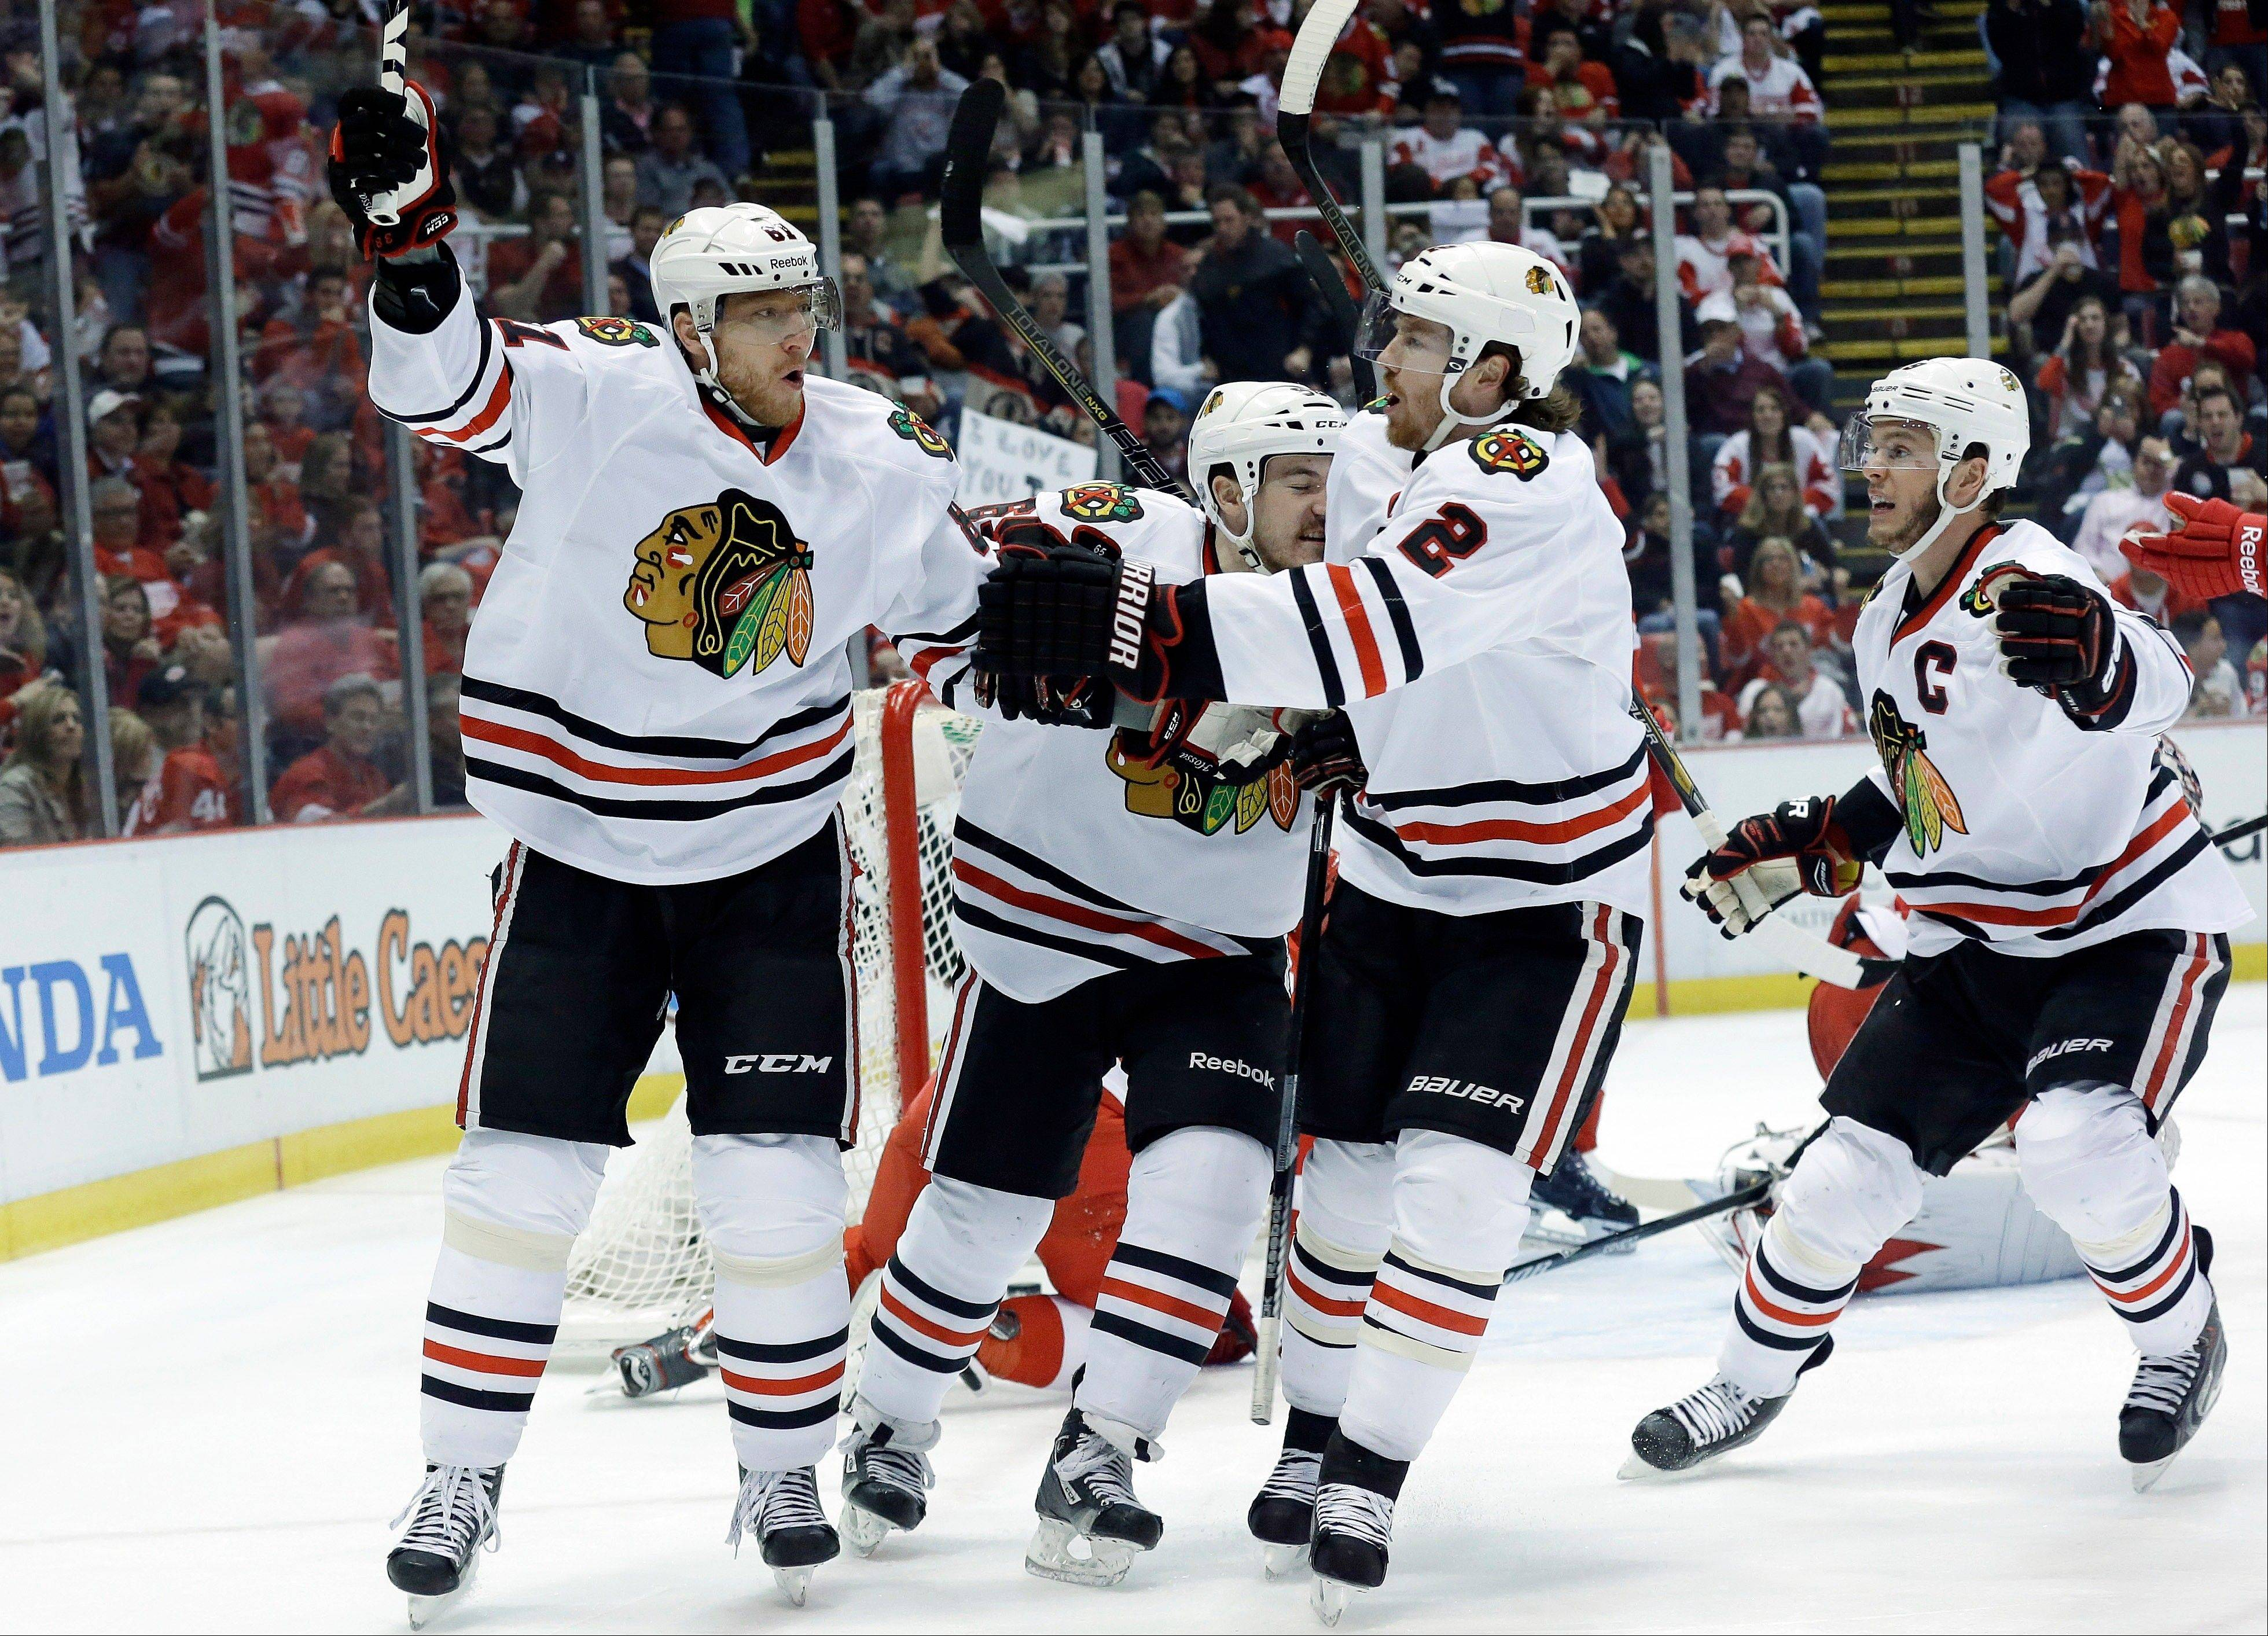 Blackhawks right wing Marian Hossa, left, celebrates his goal against the Detroit Red Wings with Andrew Shaw, Duncan Keith and Jonathan Toews during Monday's first period in Detroit.